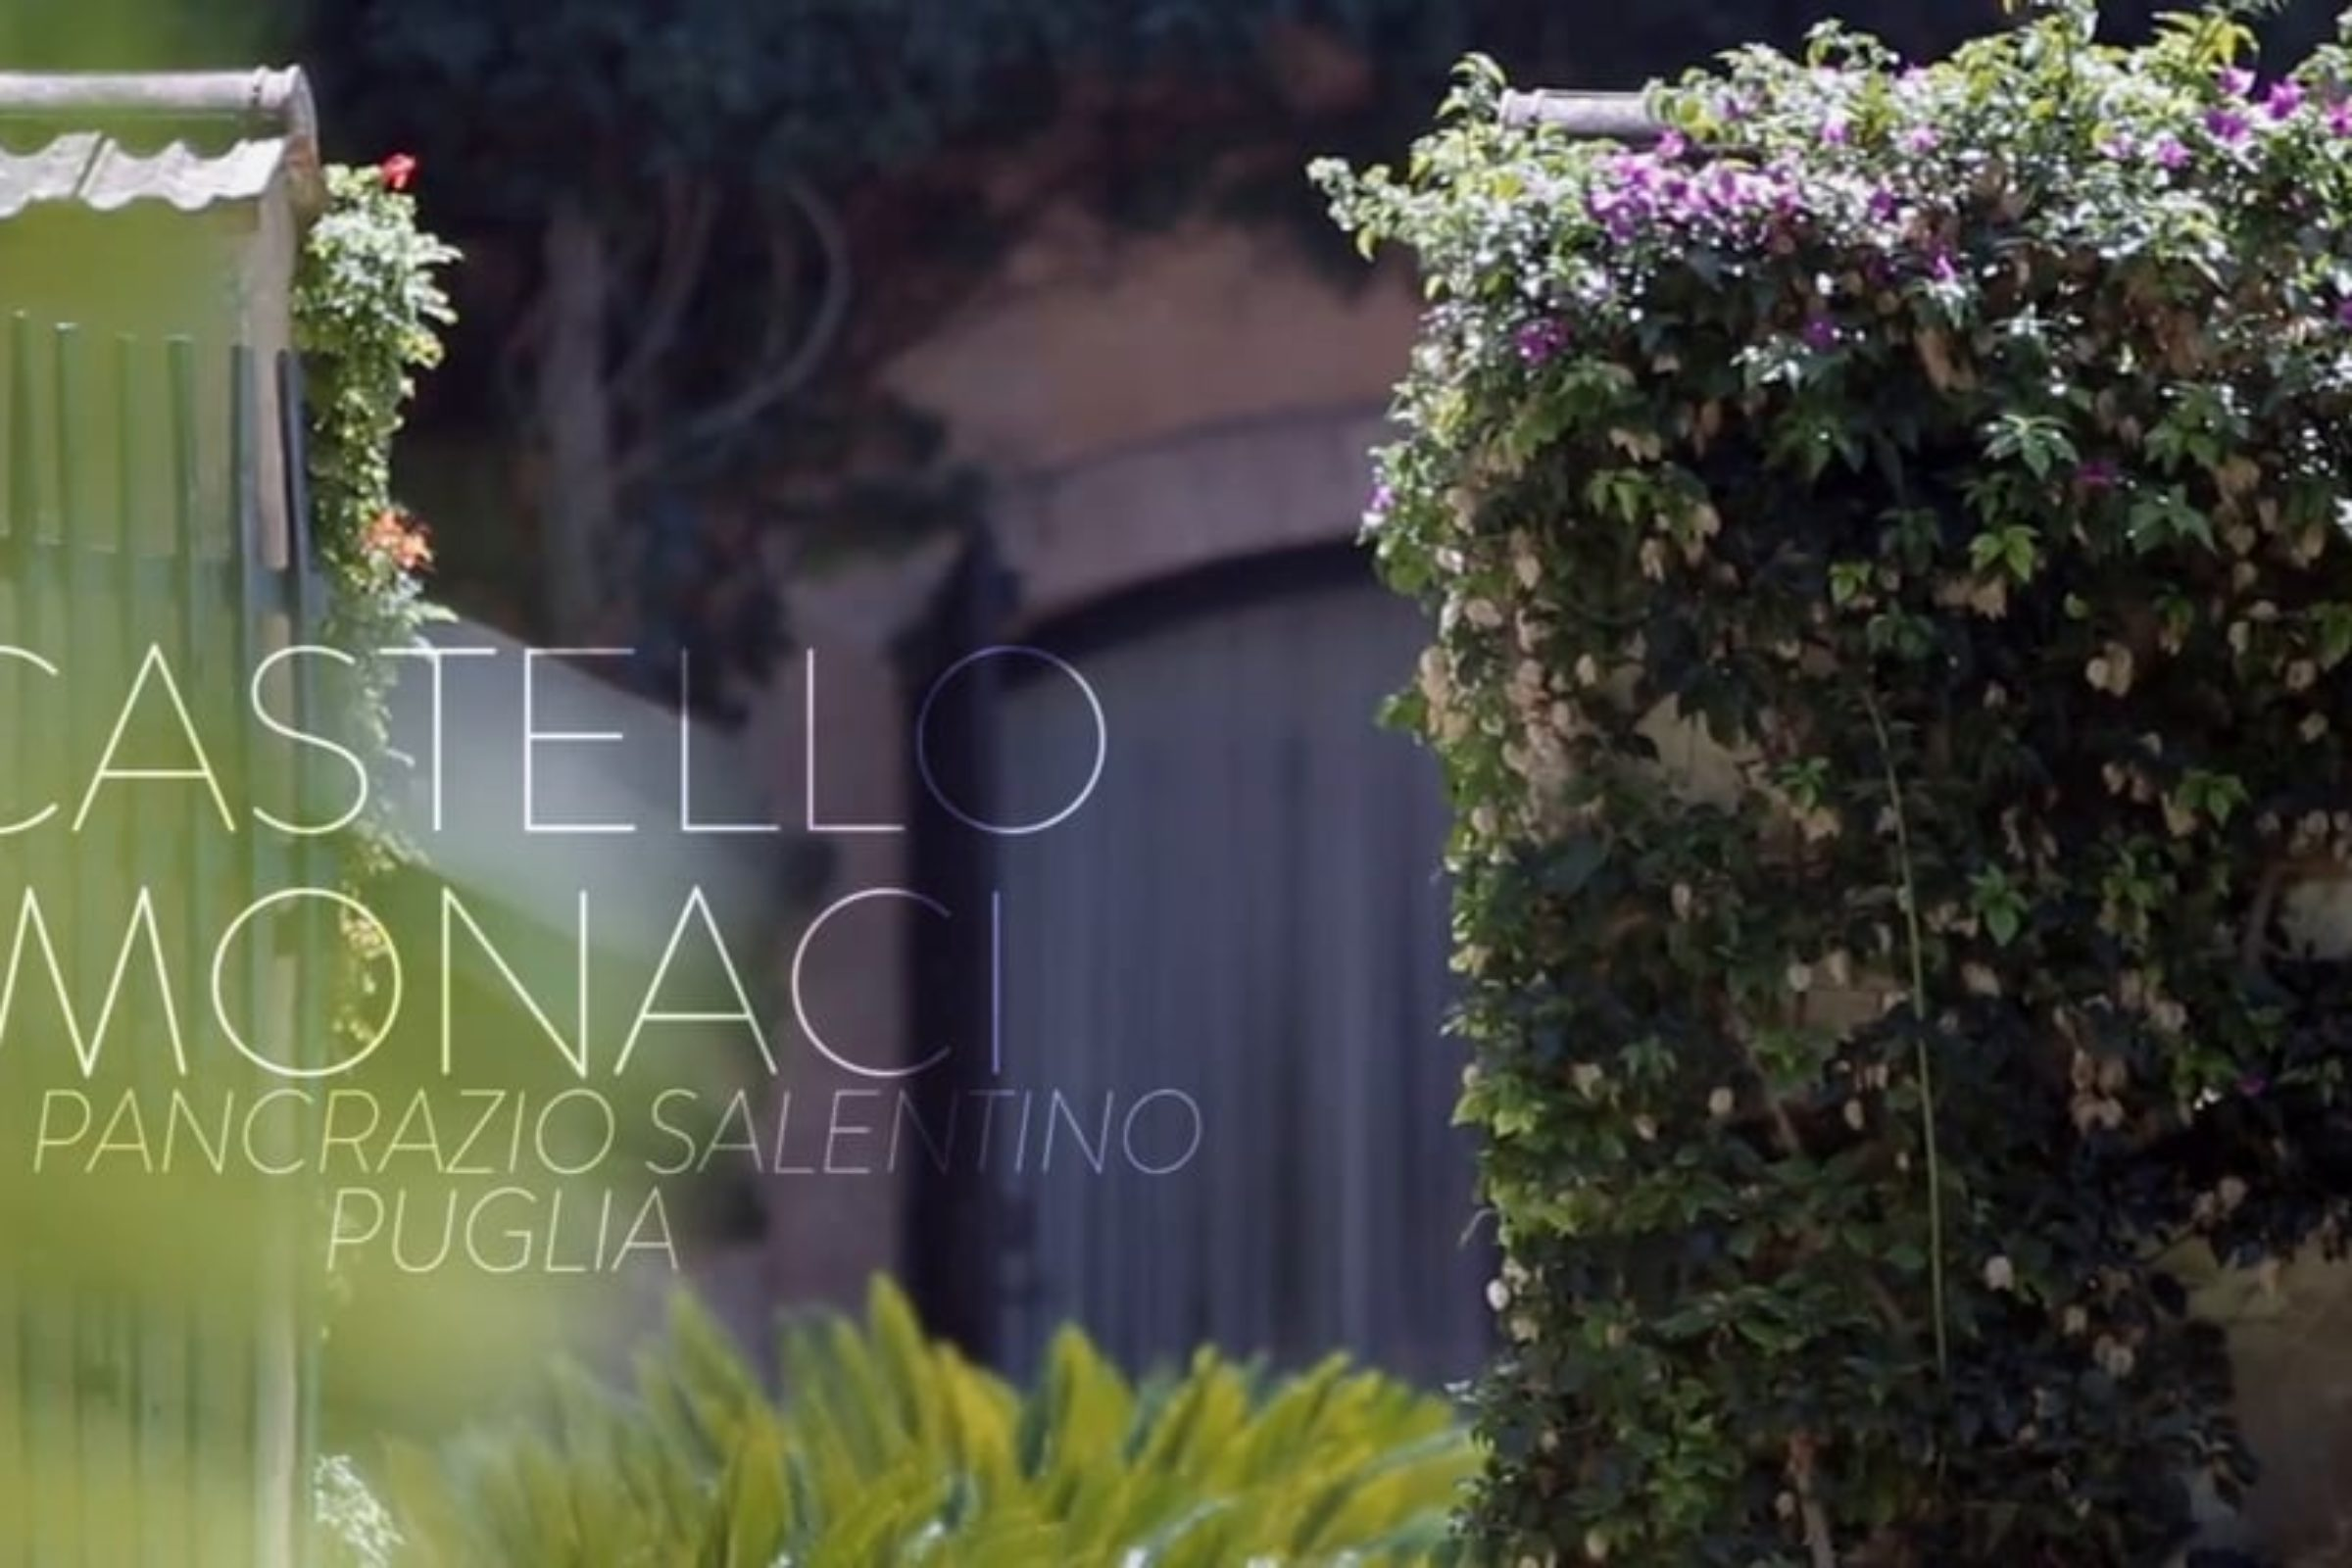 video trailer Wedding in Puglia Castello Monaci video istituzionale